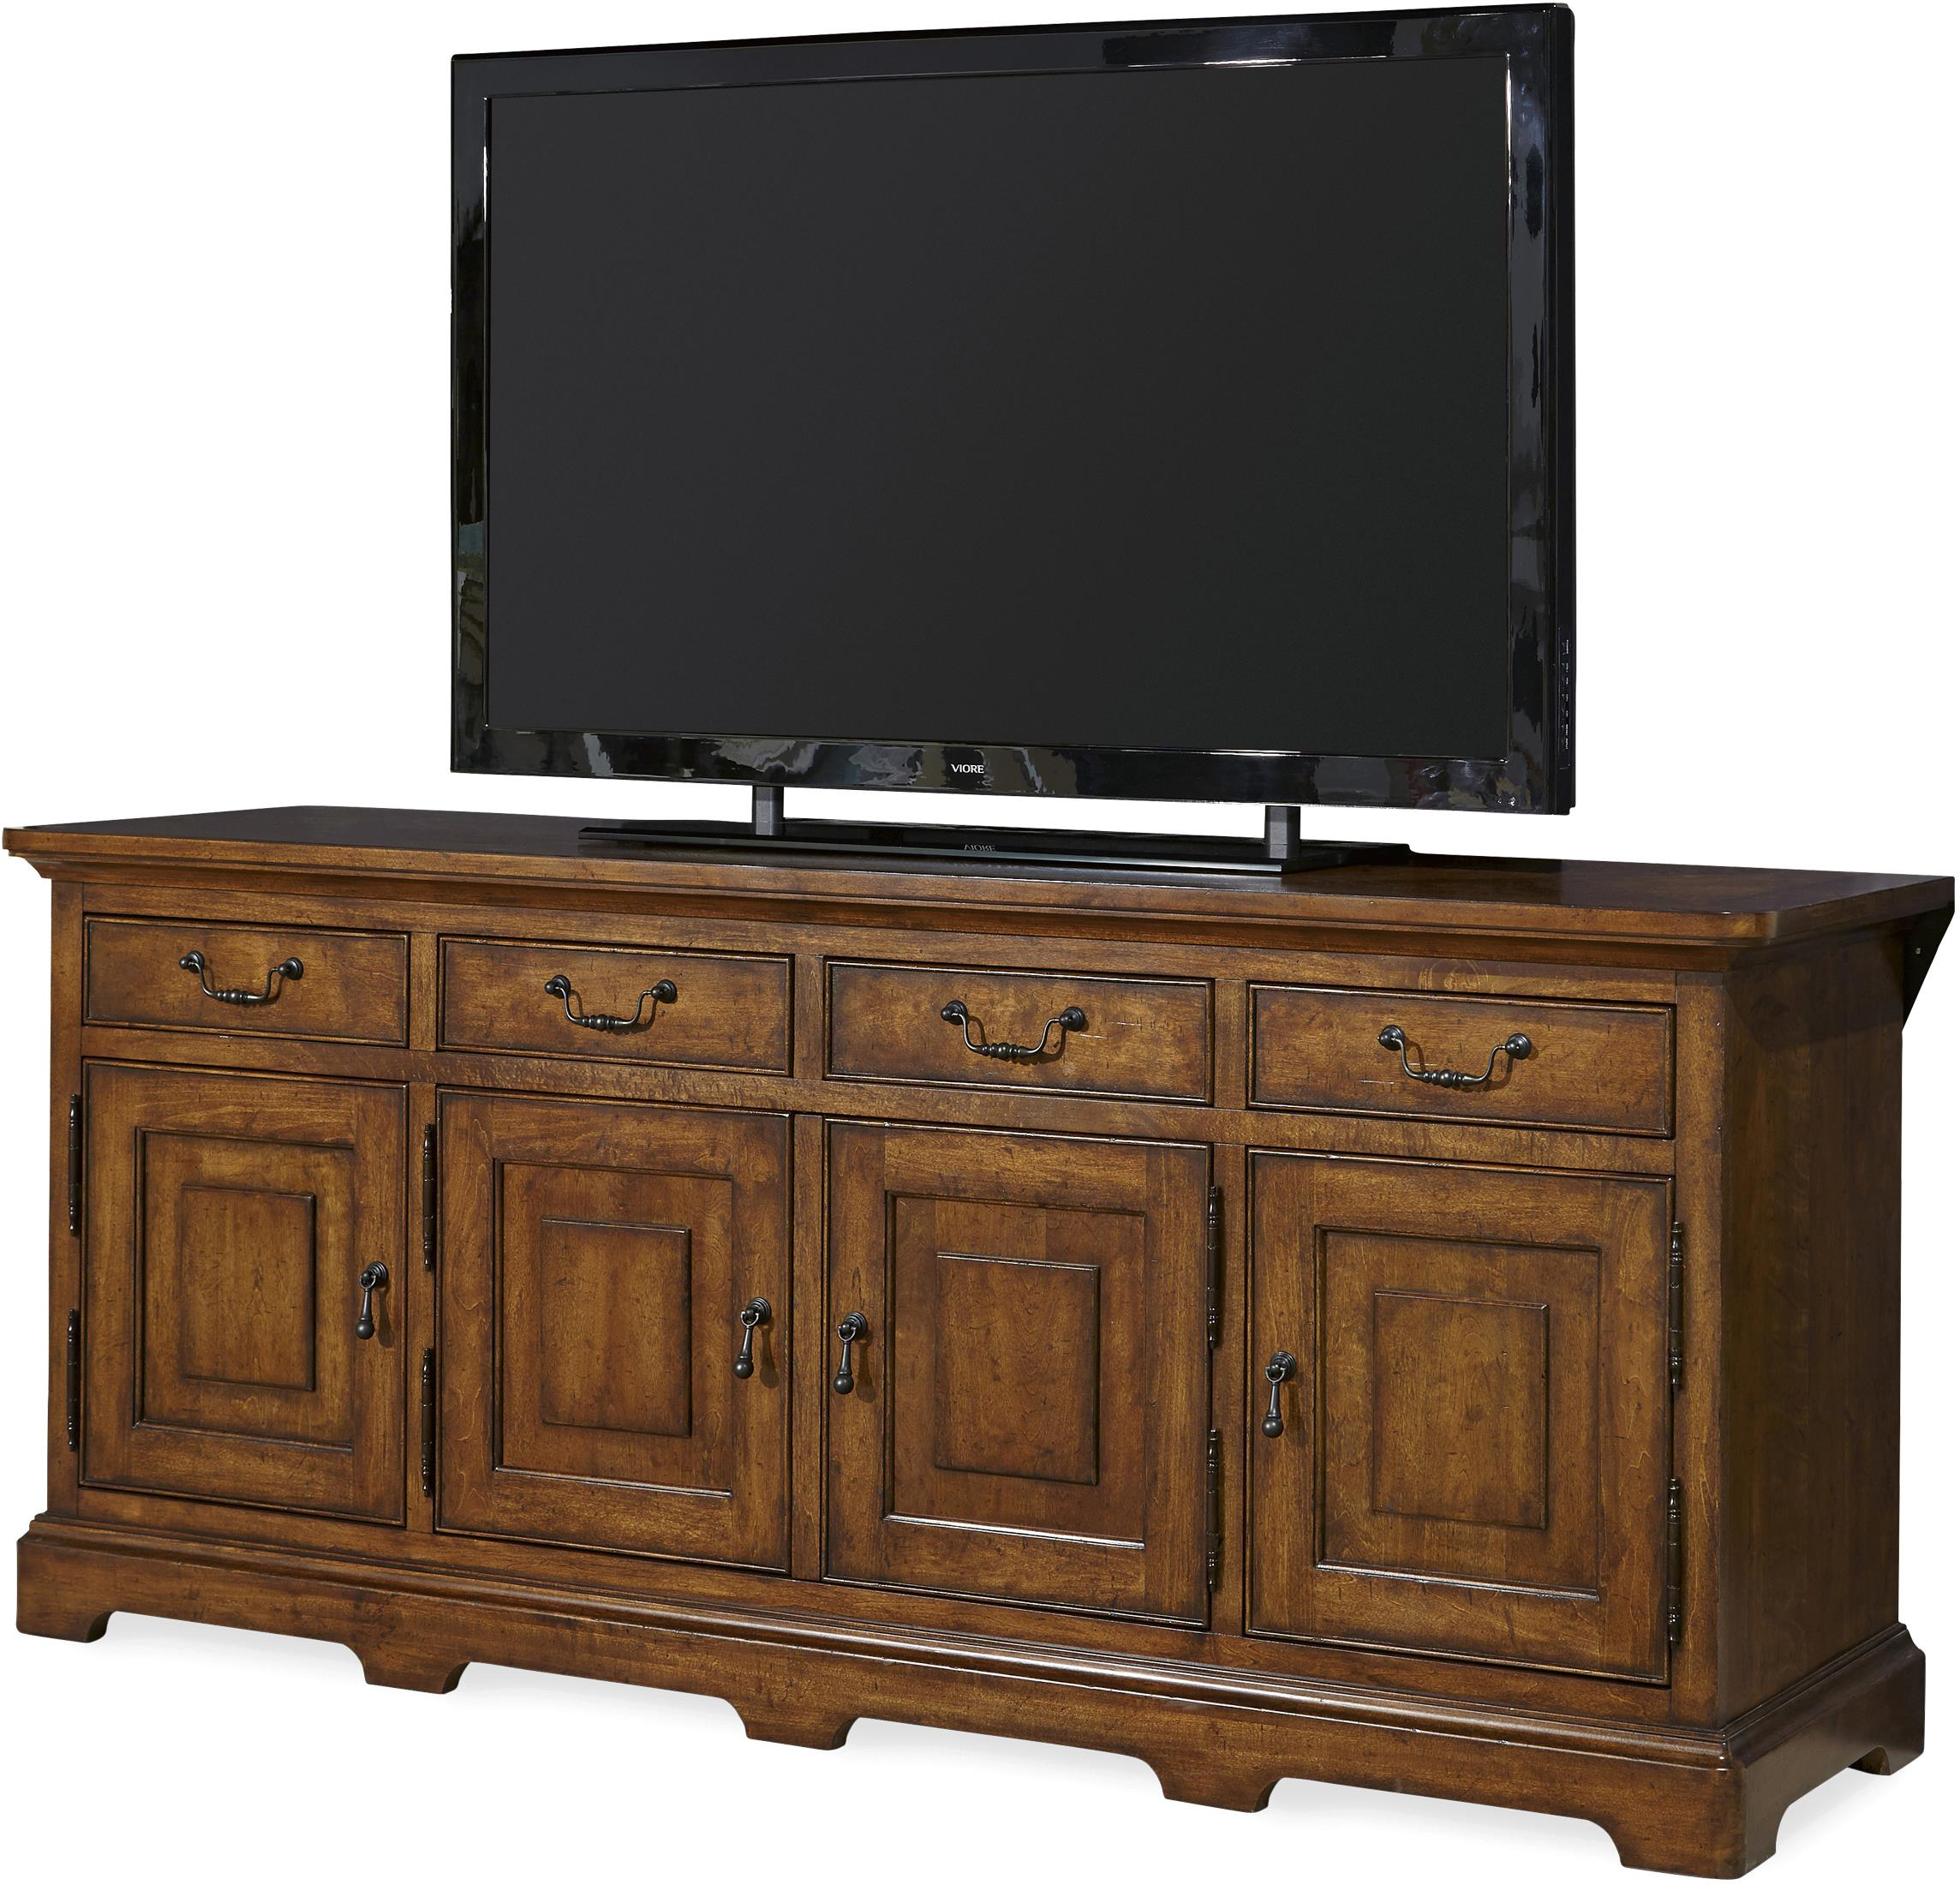 Paula Deen by Universal Dogwood Entertainment Console - Item Number: 596966